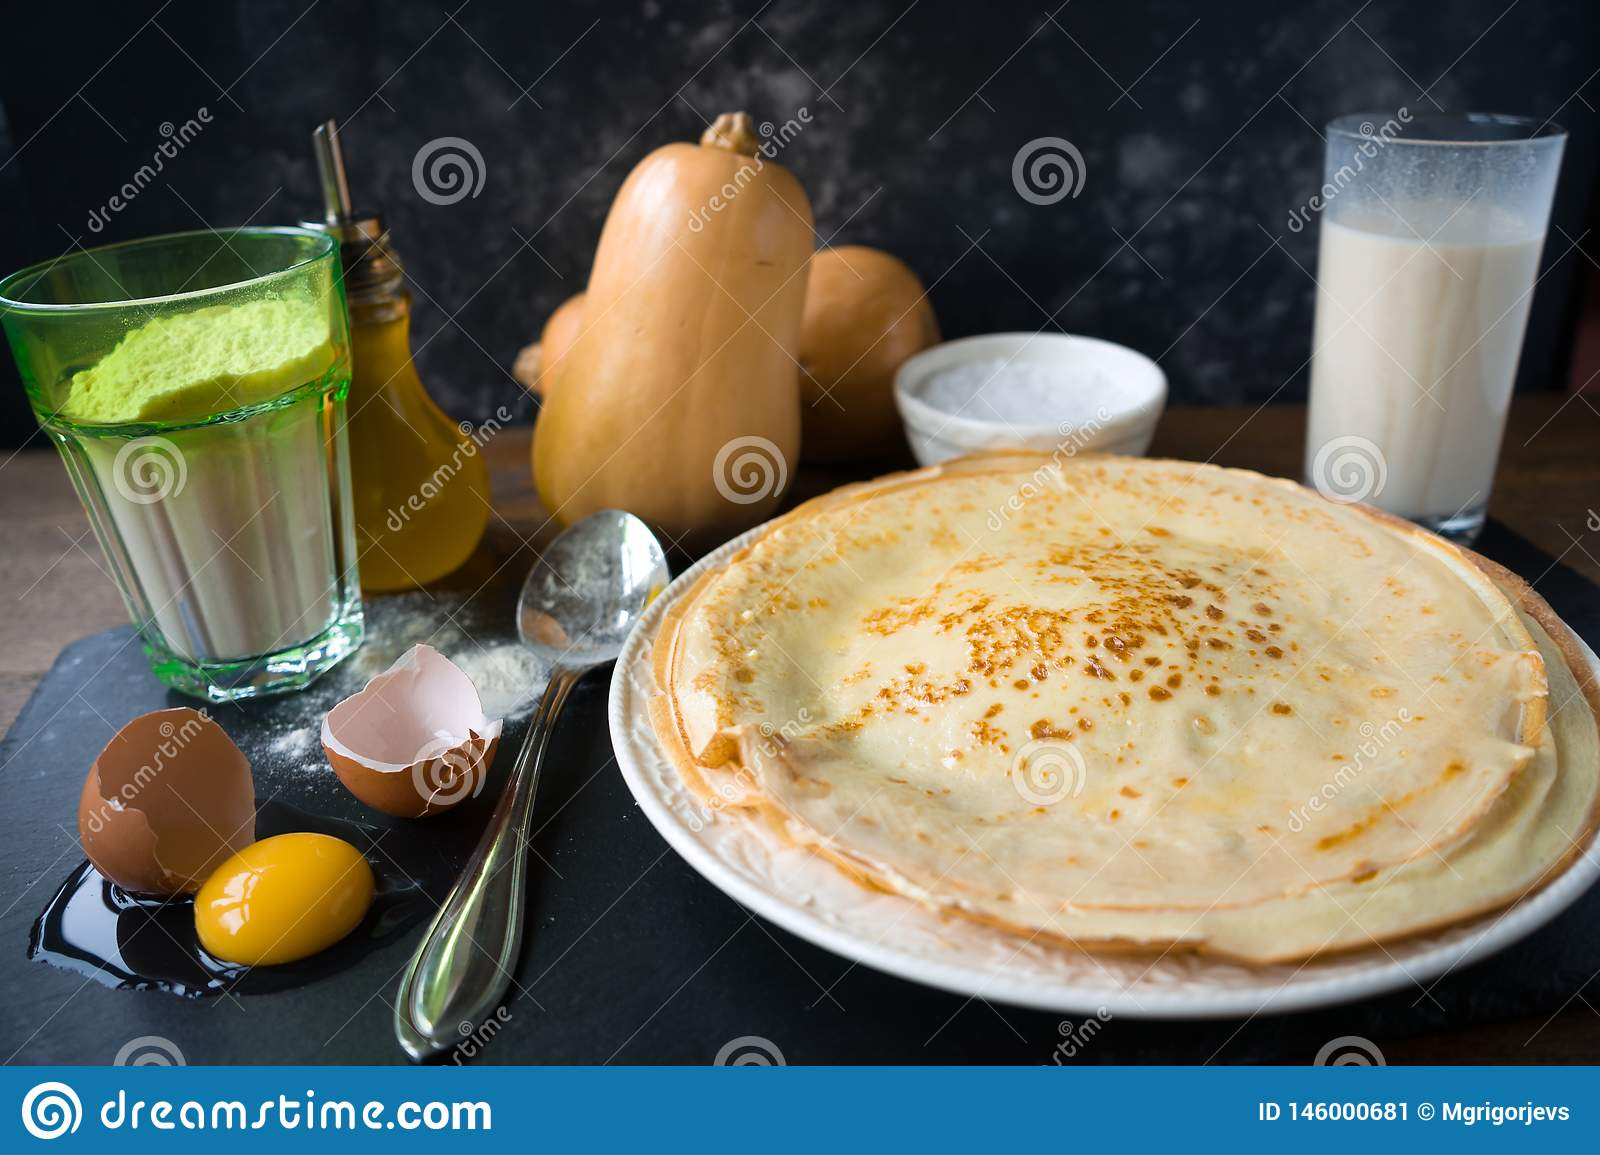 Ingredients for making pancakes - egg, butter, milk, sugar and raw dough, Rustic or rural style